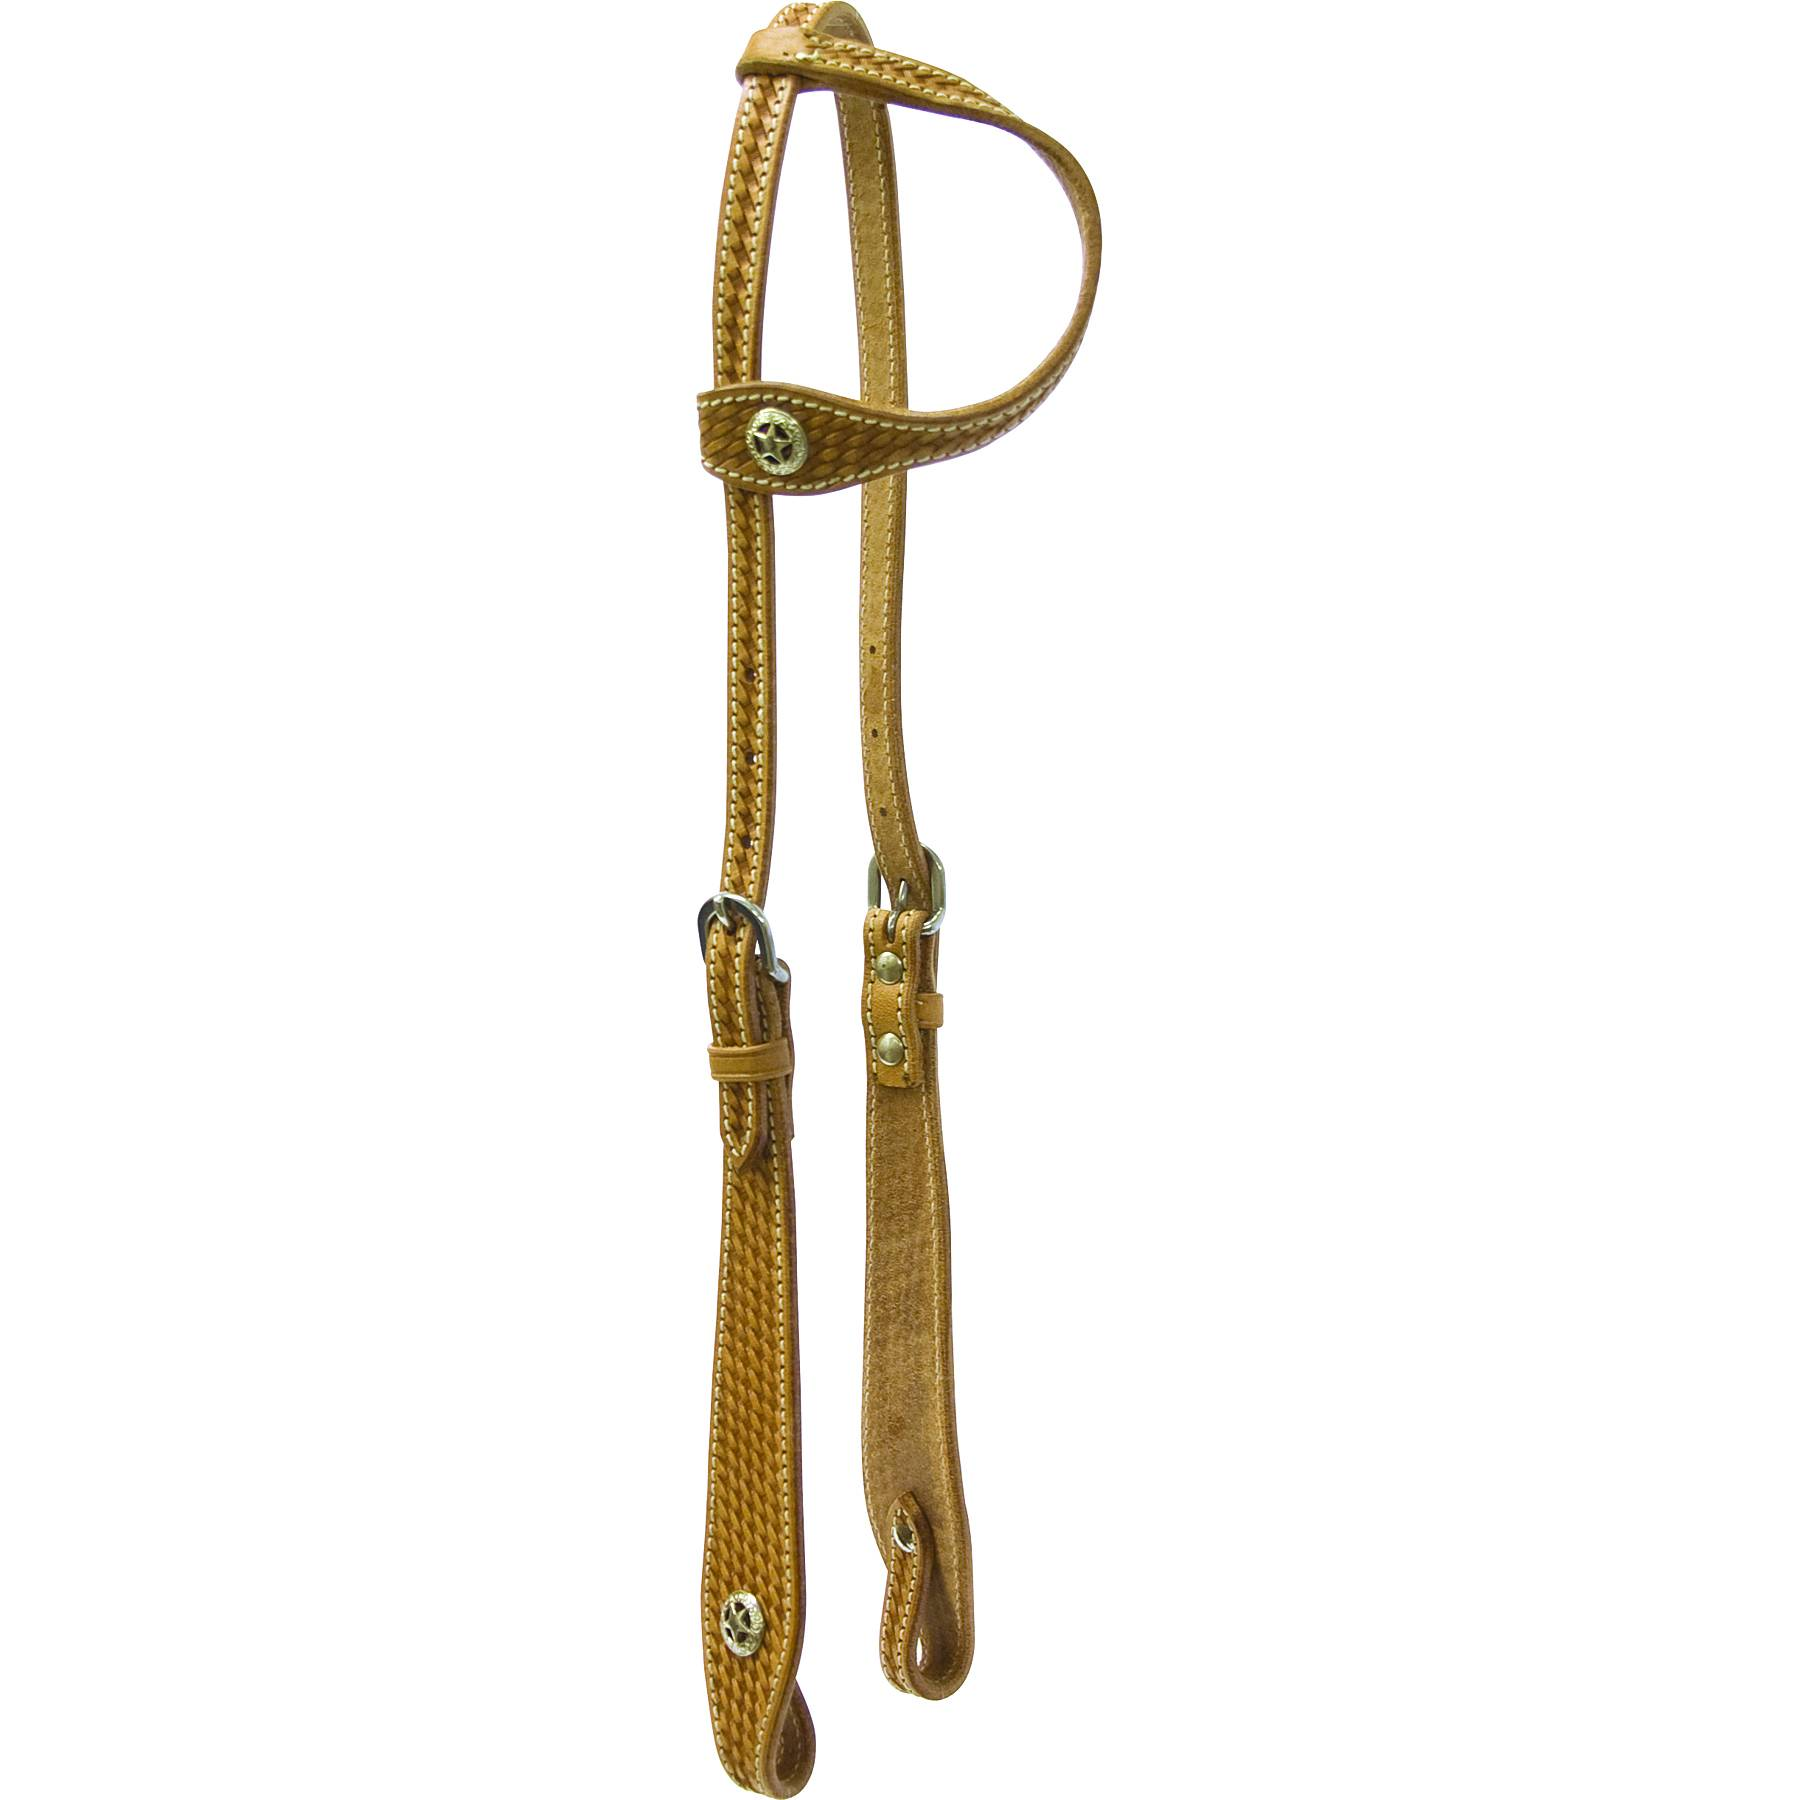 Cowboy Pro One Ear Headstall with Star Concho